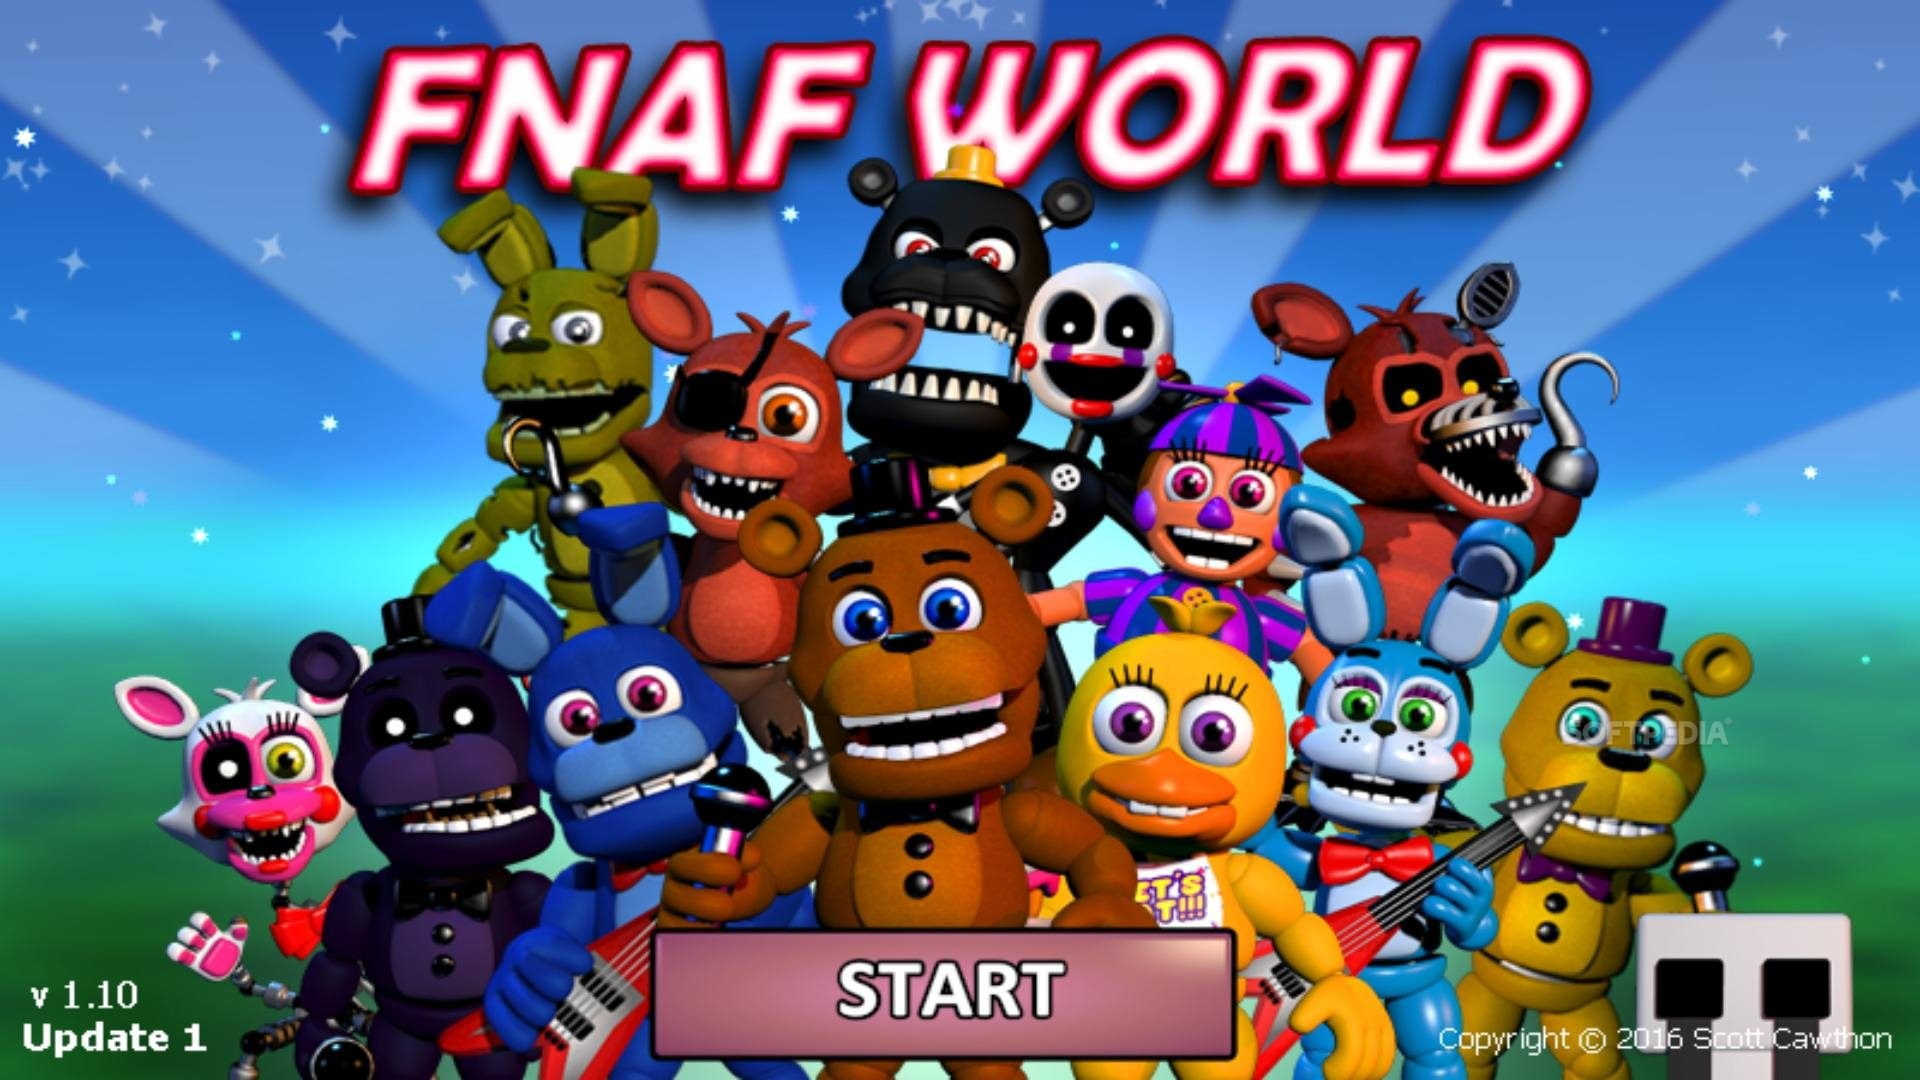 1920x1080 FNaF World - You can start playing right away from the main menu.